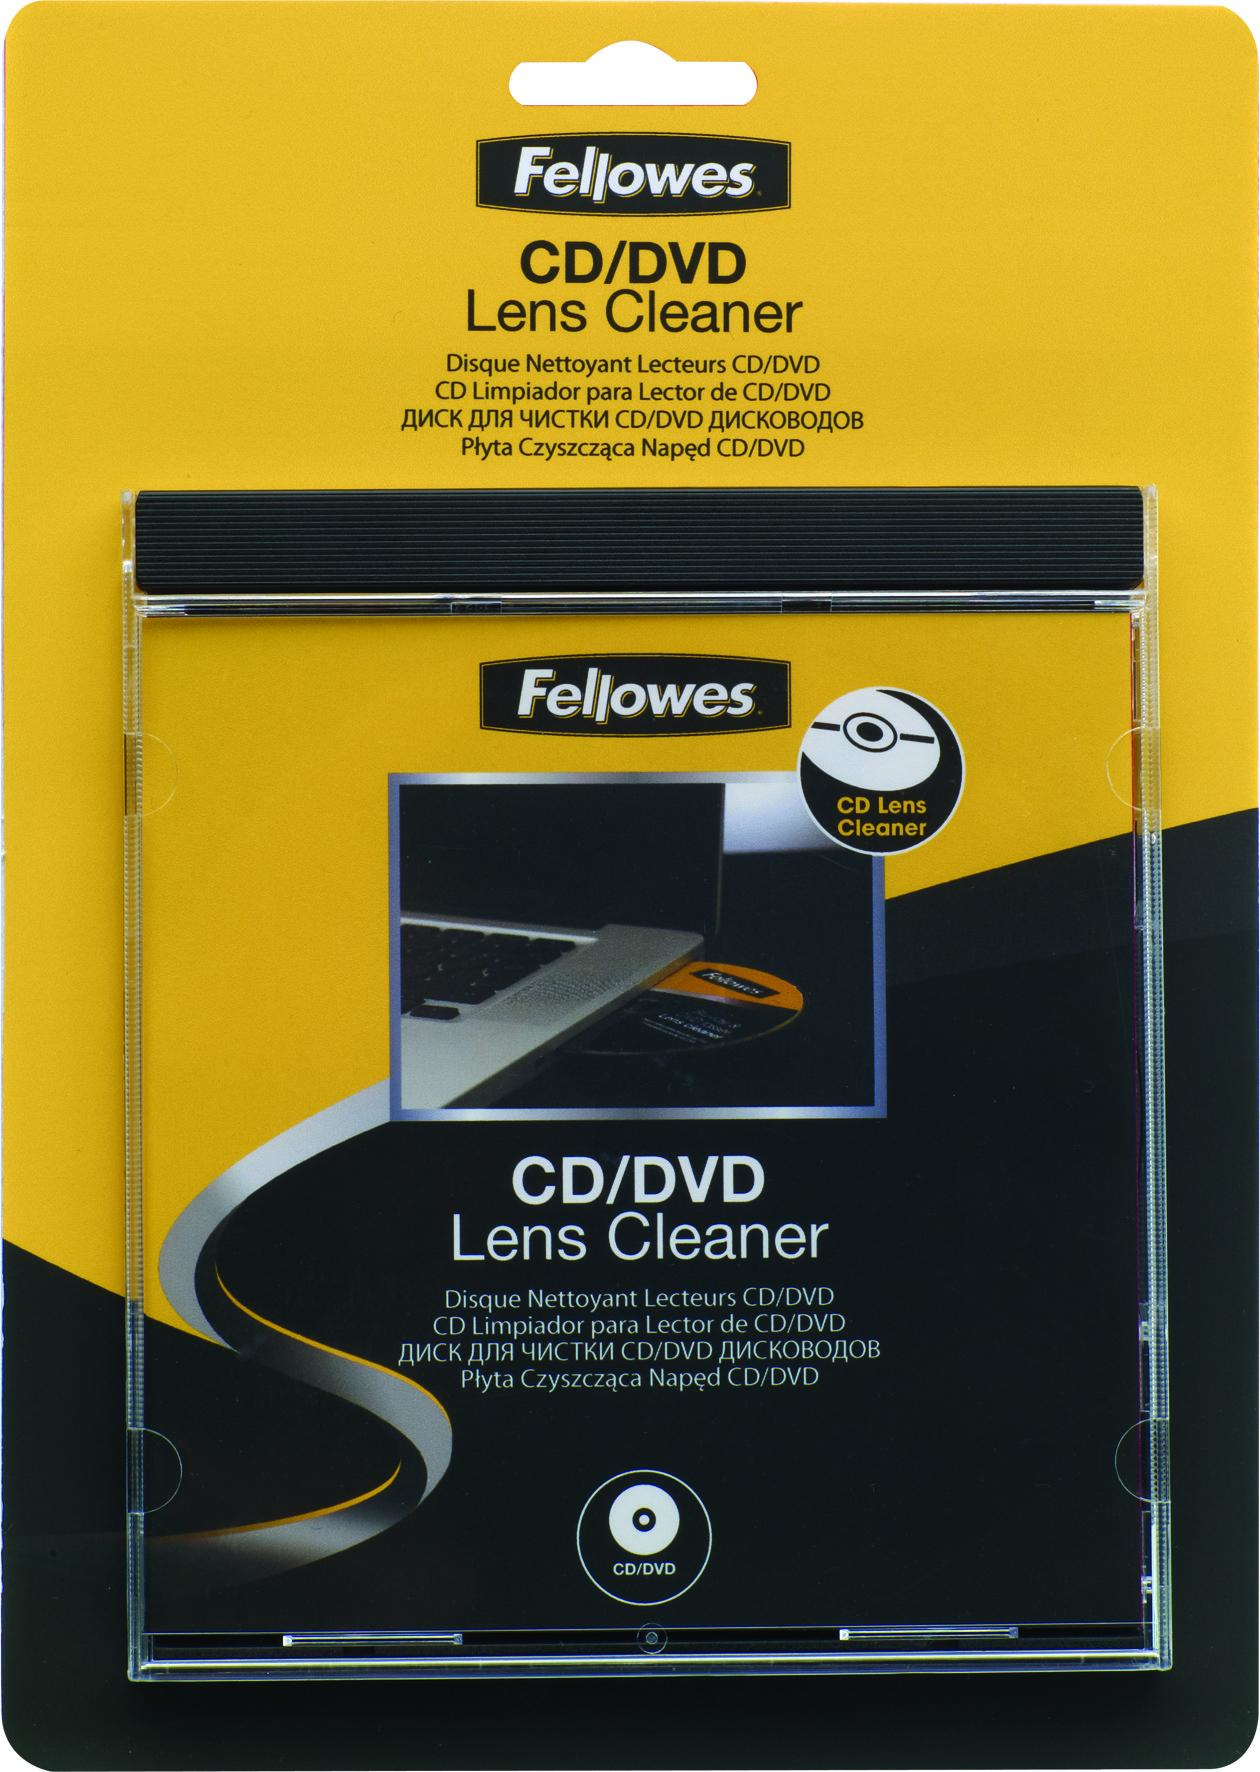 Cd Lens Cleaner